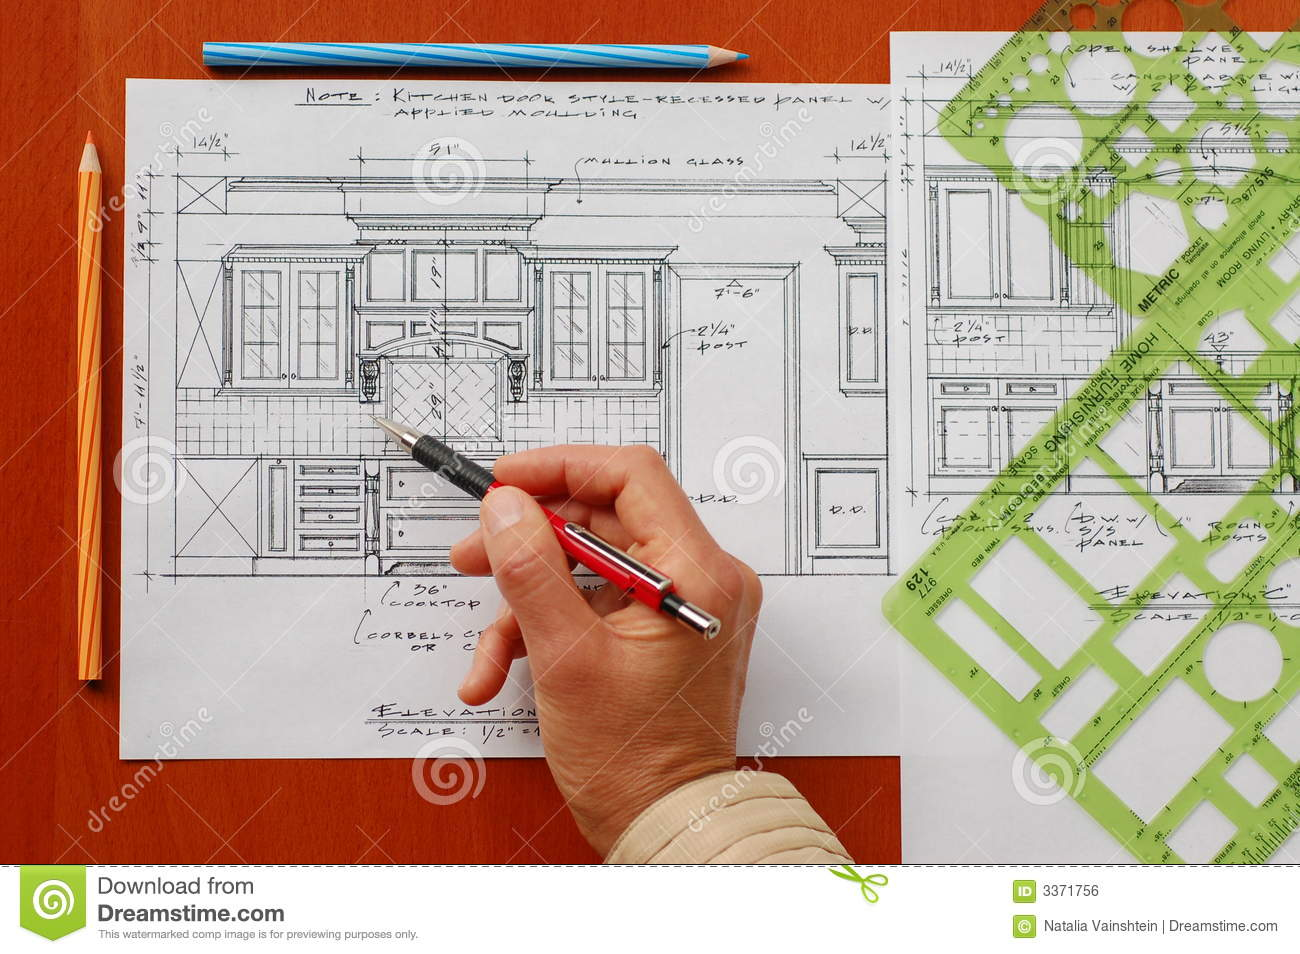 Interior design drawings stock photo image of building for Interior designs drawings